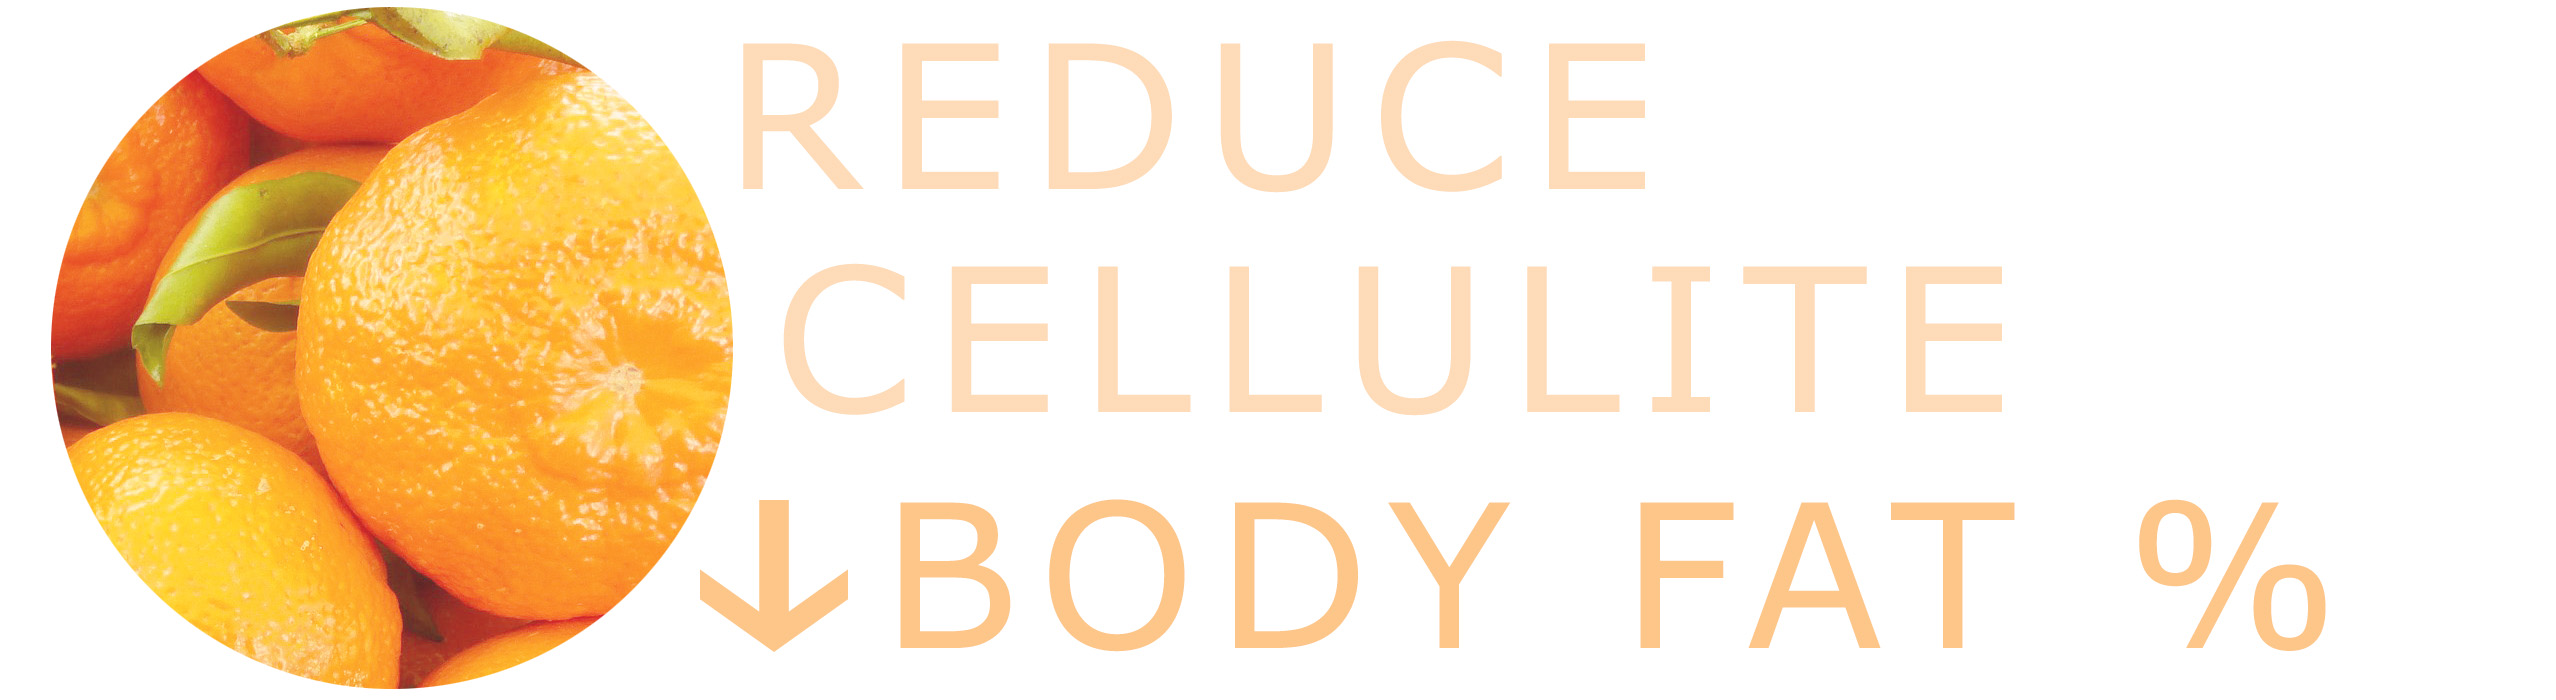 Just WHAT the HECK is Cellulite, I mean we are all a tad worried about this thing, but what is IT, WHY does it happen PLUS, I wouldn't leave you just there... HOW to reduce Cellulite, oh yes, 3 ways to reduce your Cellulite!